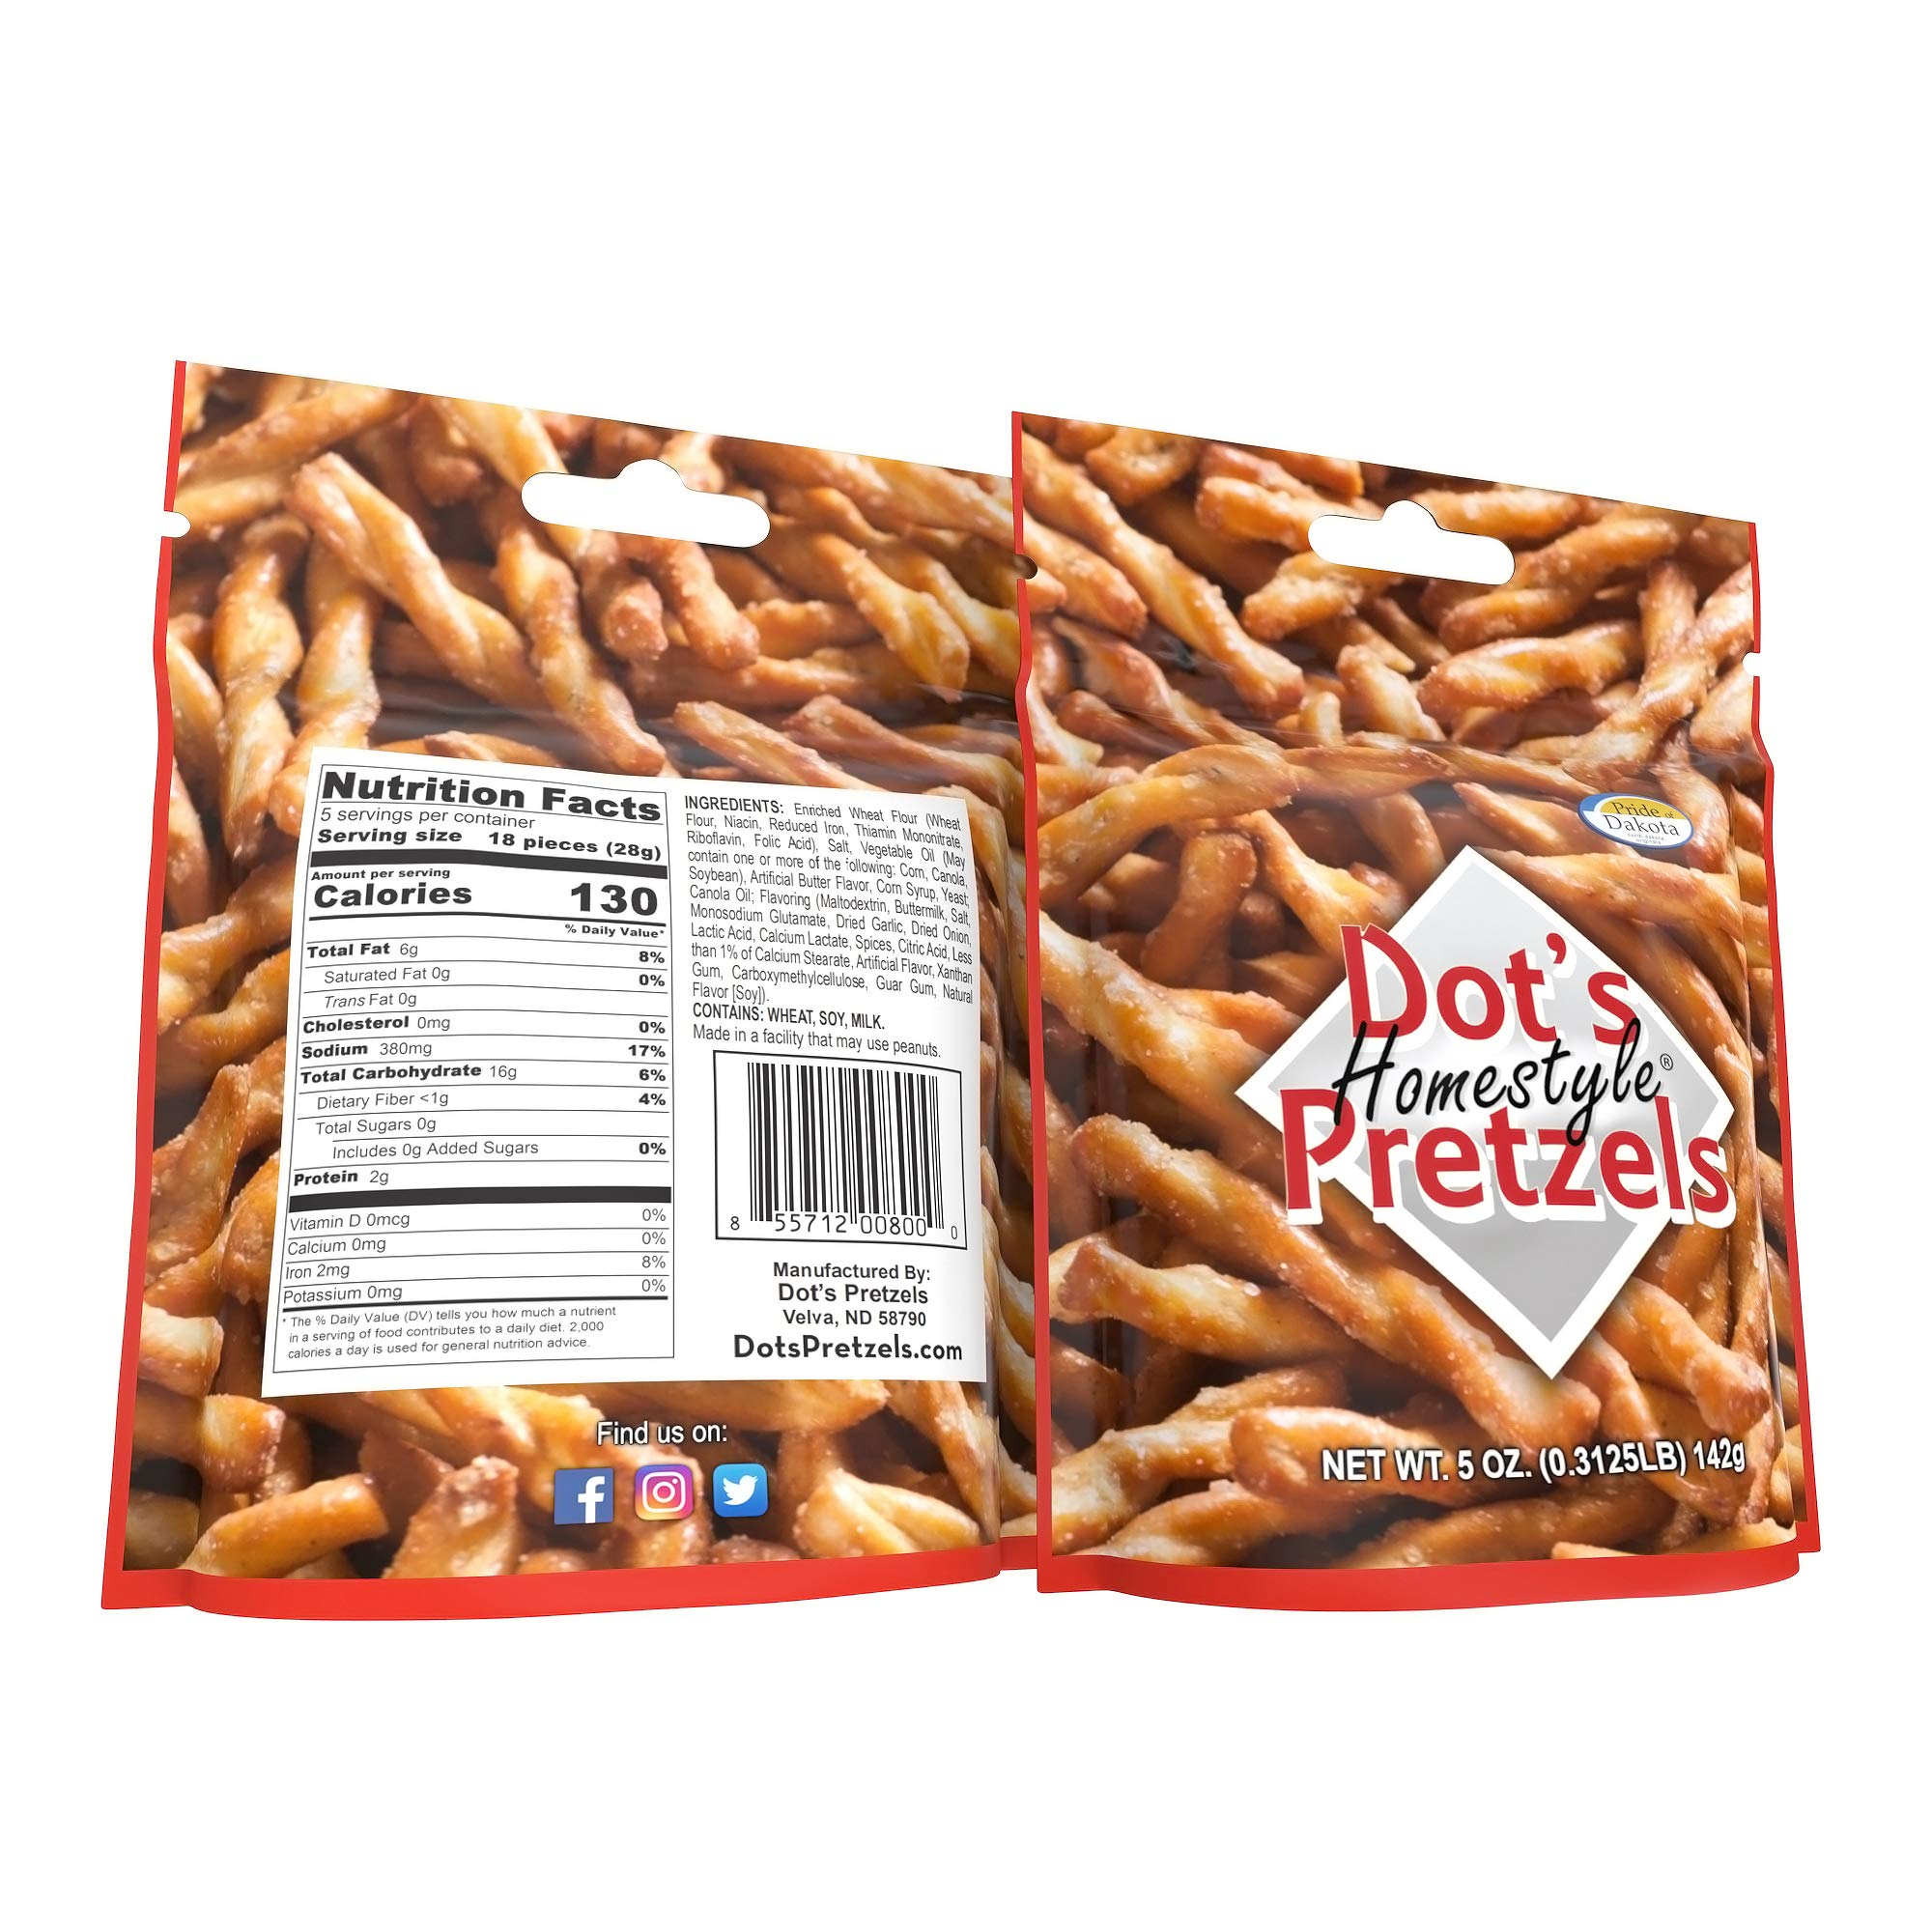 Dot's Homestyle Pretzels 5 oz. Bags (10 Pack) Snack Sized Seasoned Pretzel Snack Sticks by Dot's Homestyle Pretzels (Image #7)